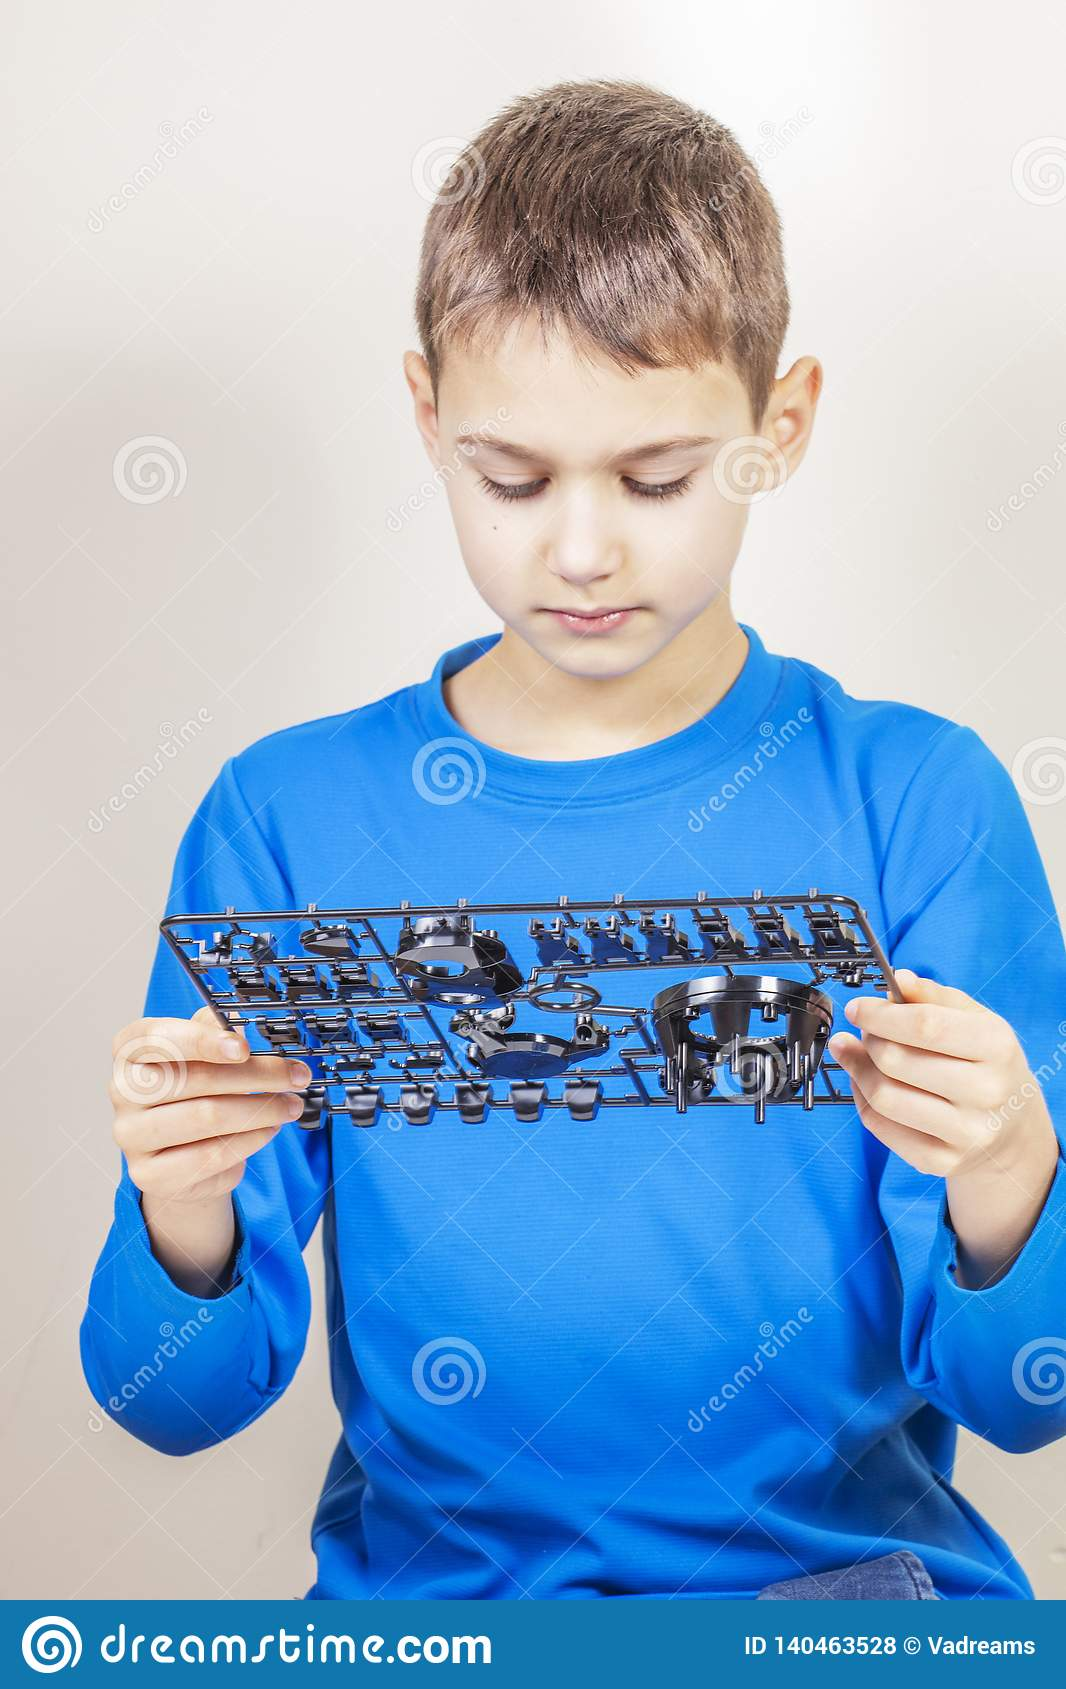 Child looking to new robot car details. Robotic, learning, technology, stem education for children background